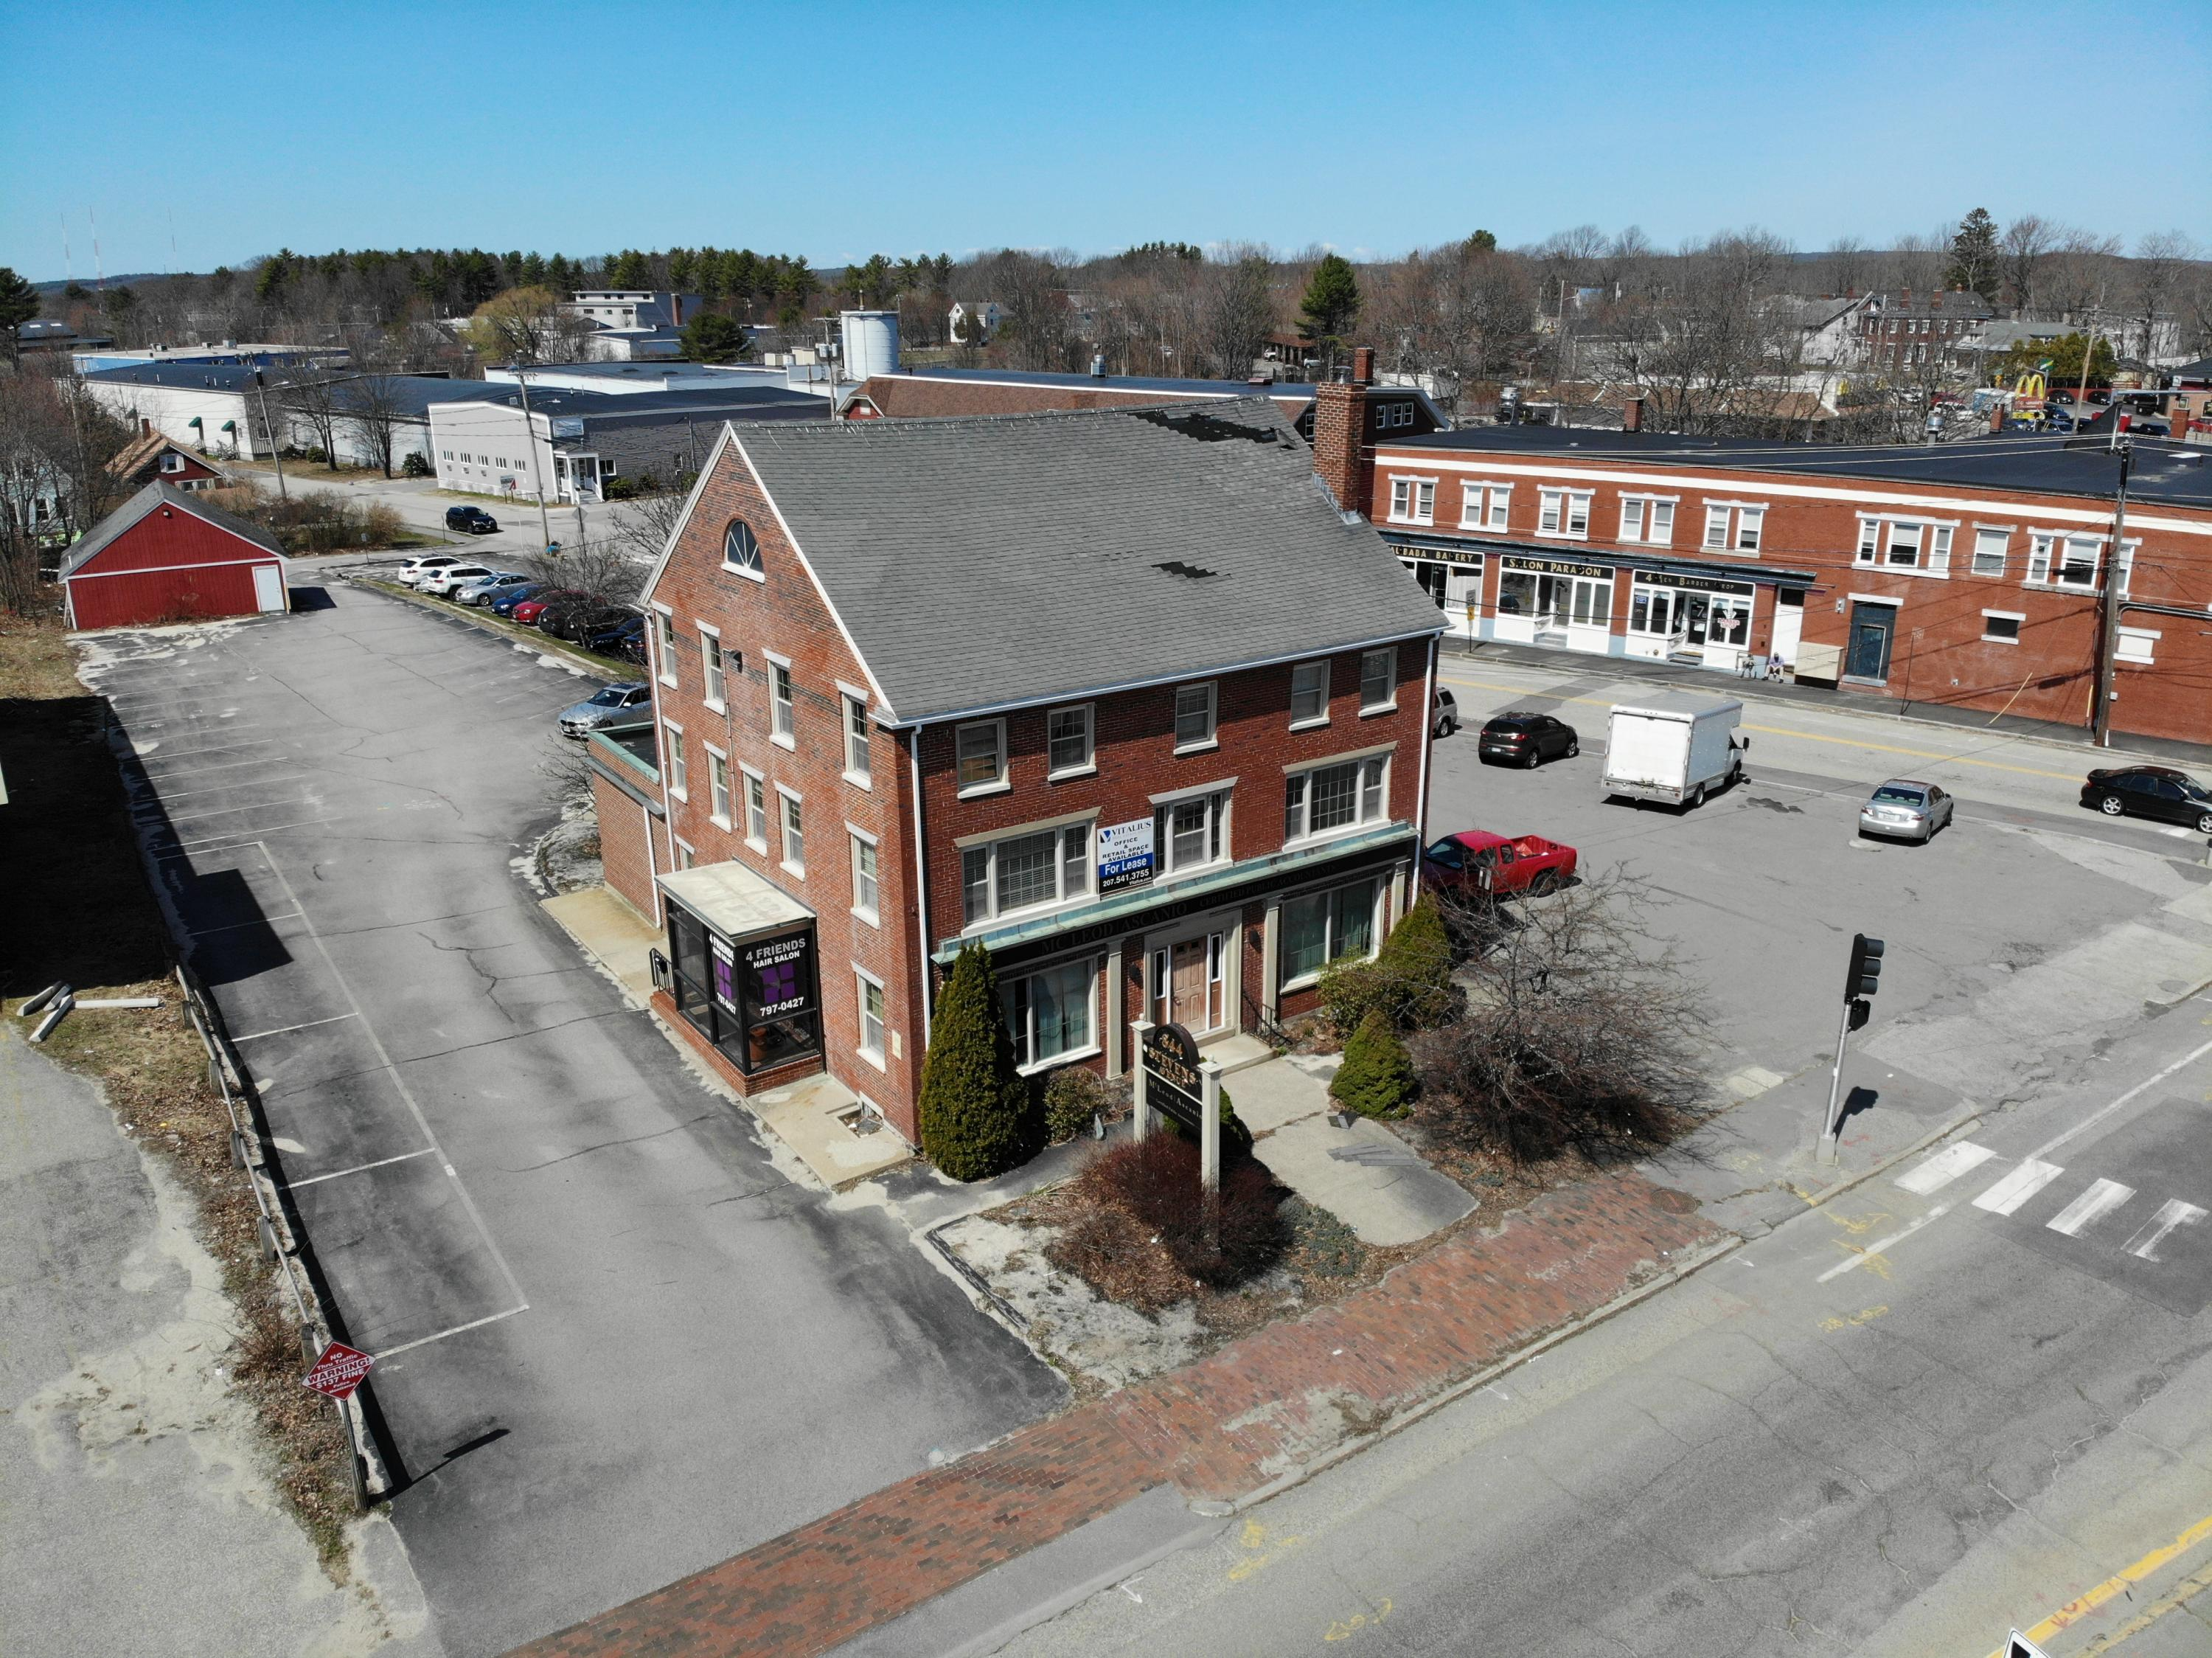 Main image for MLS listing 1487855